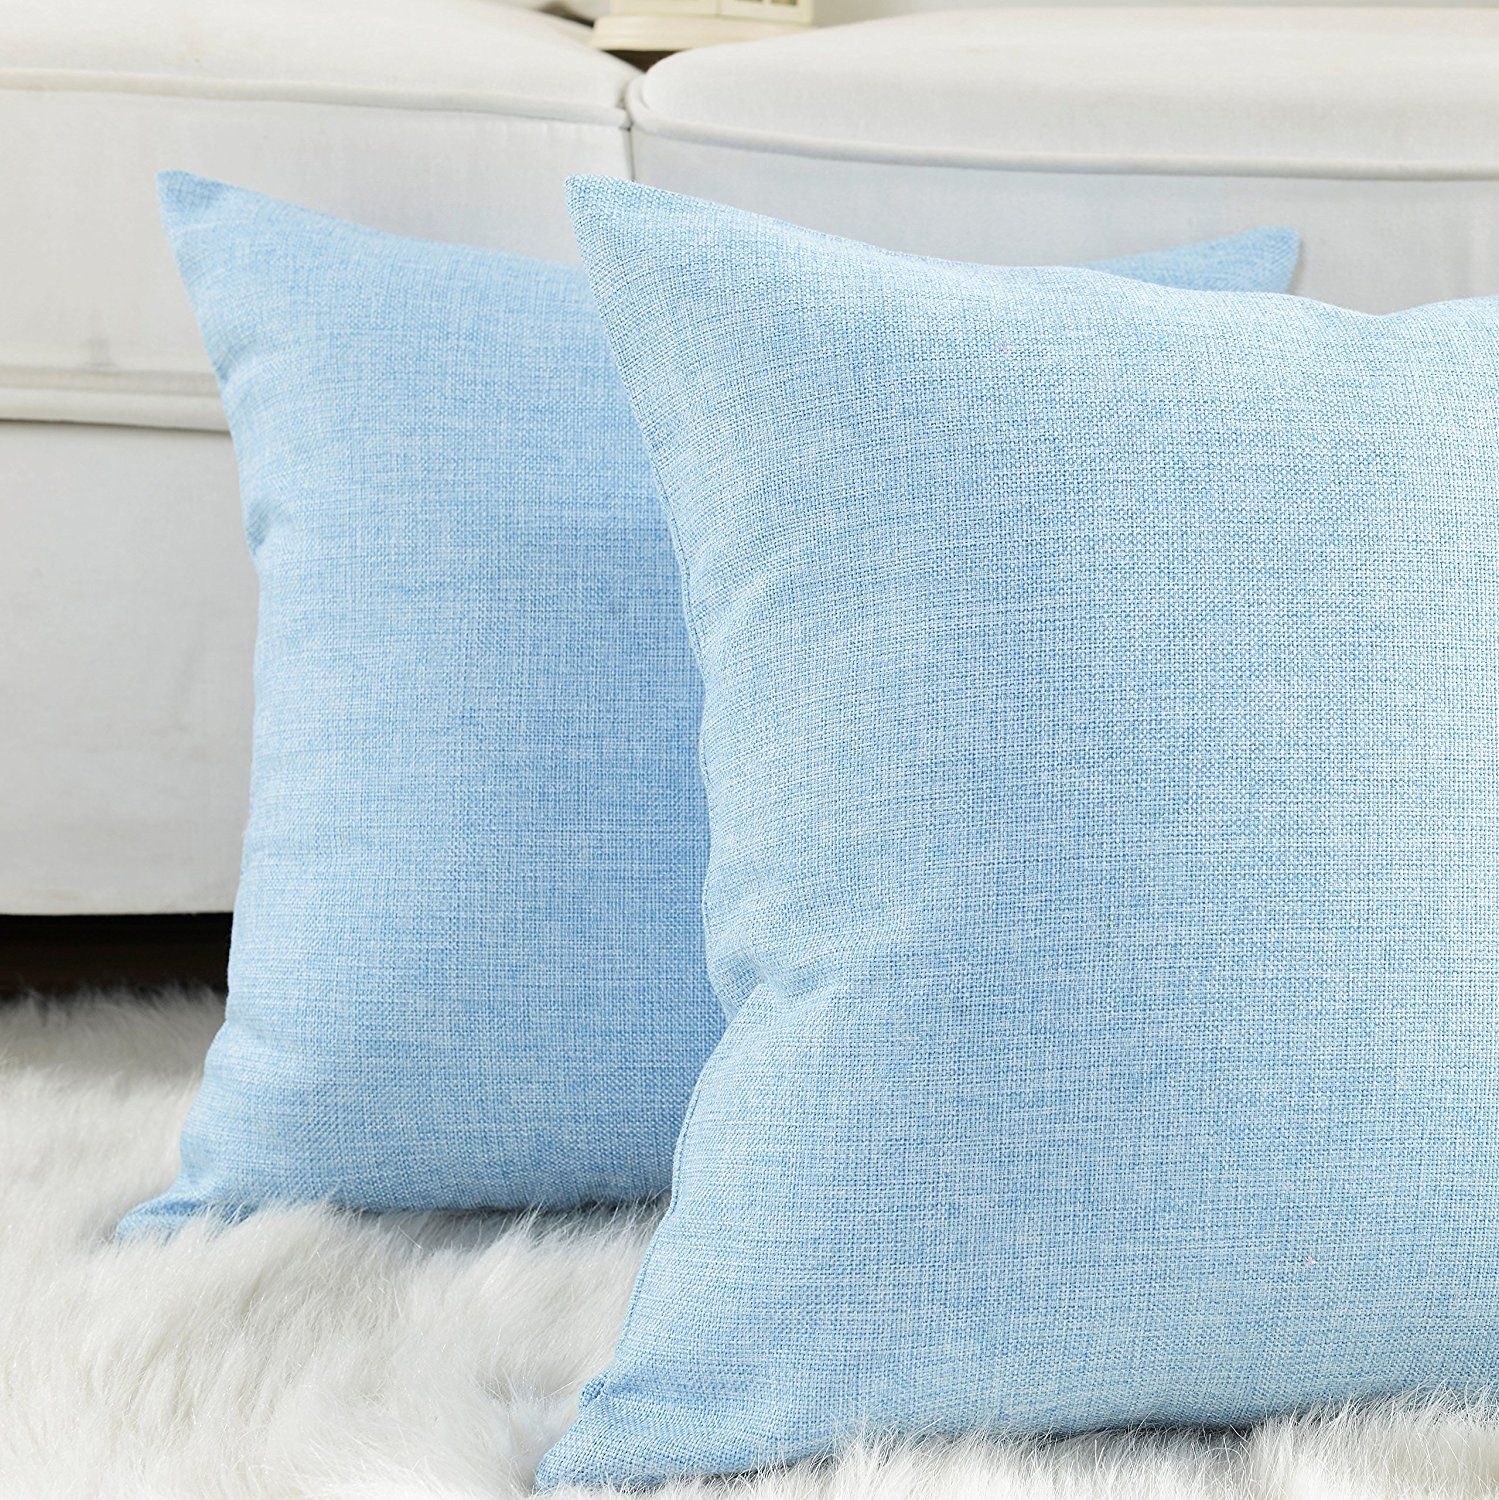 Baby Blue Pillows For Rent Frm Oc Brides Blue Pillows Blue Living Room Decor Light Blue Pillows